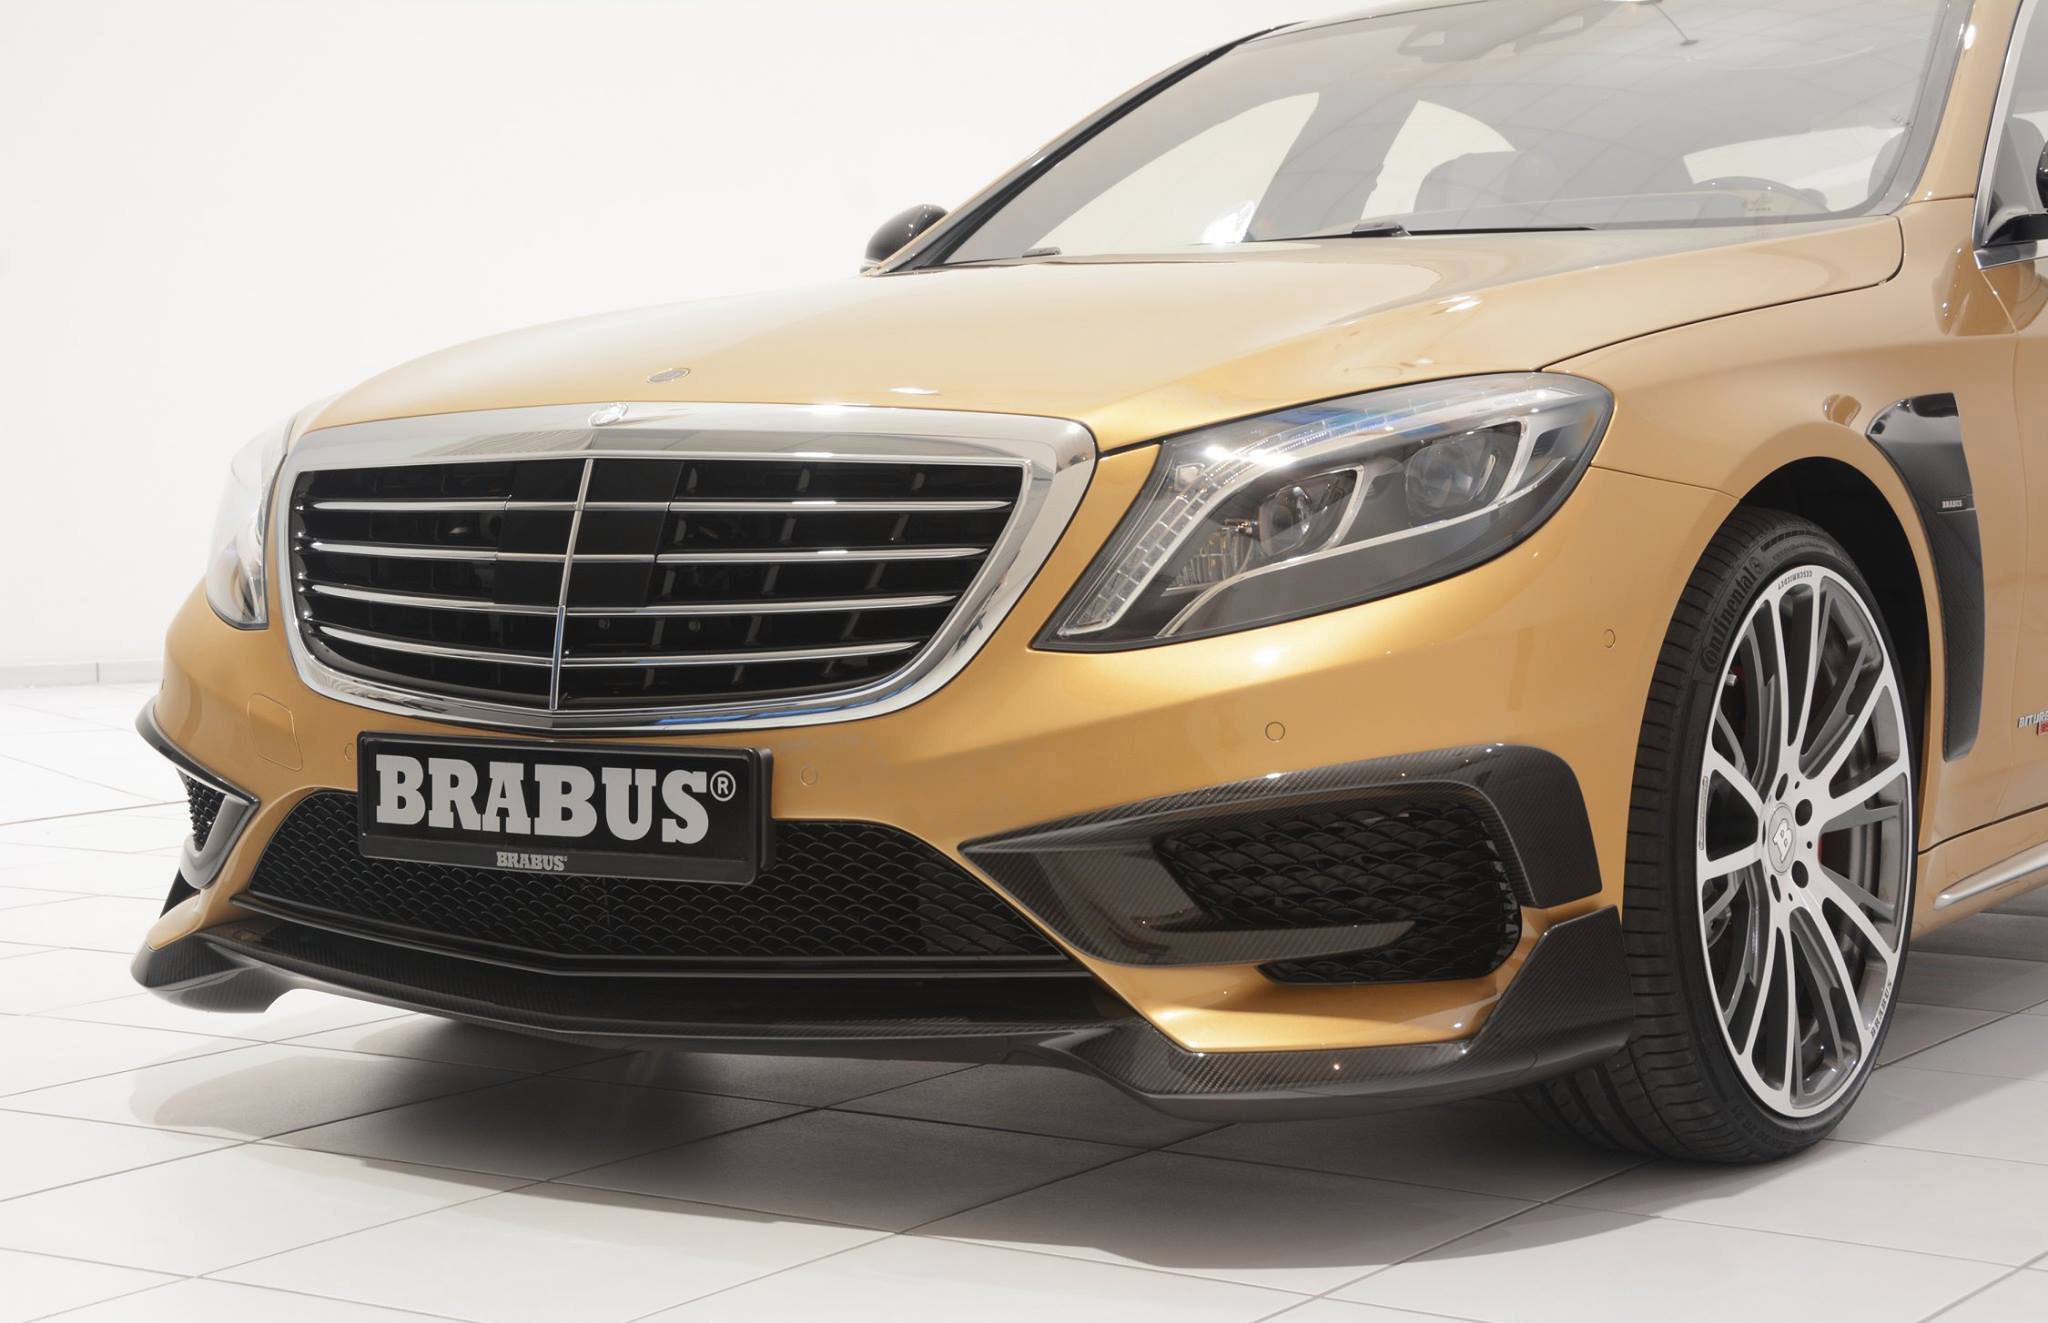 Mercedes benz s63 amg reworked by brabus for Mercedes benz s63 amg biturbo